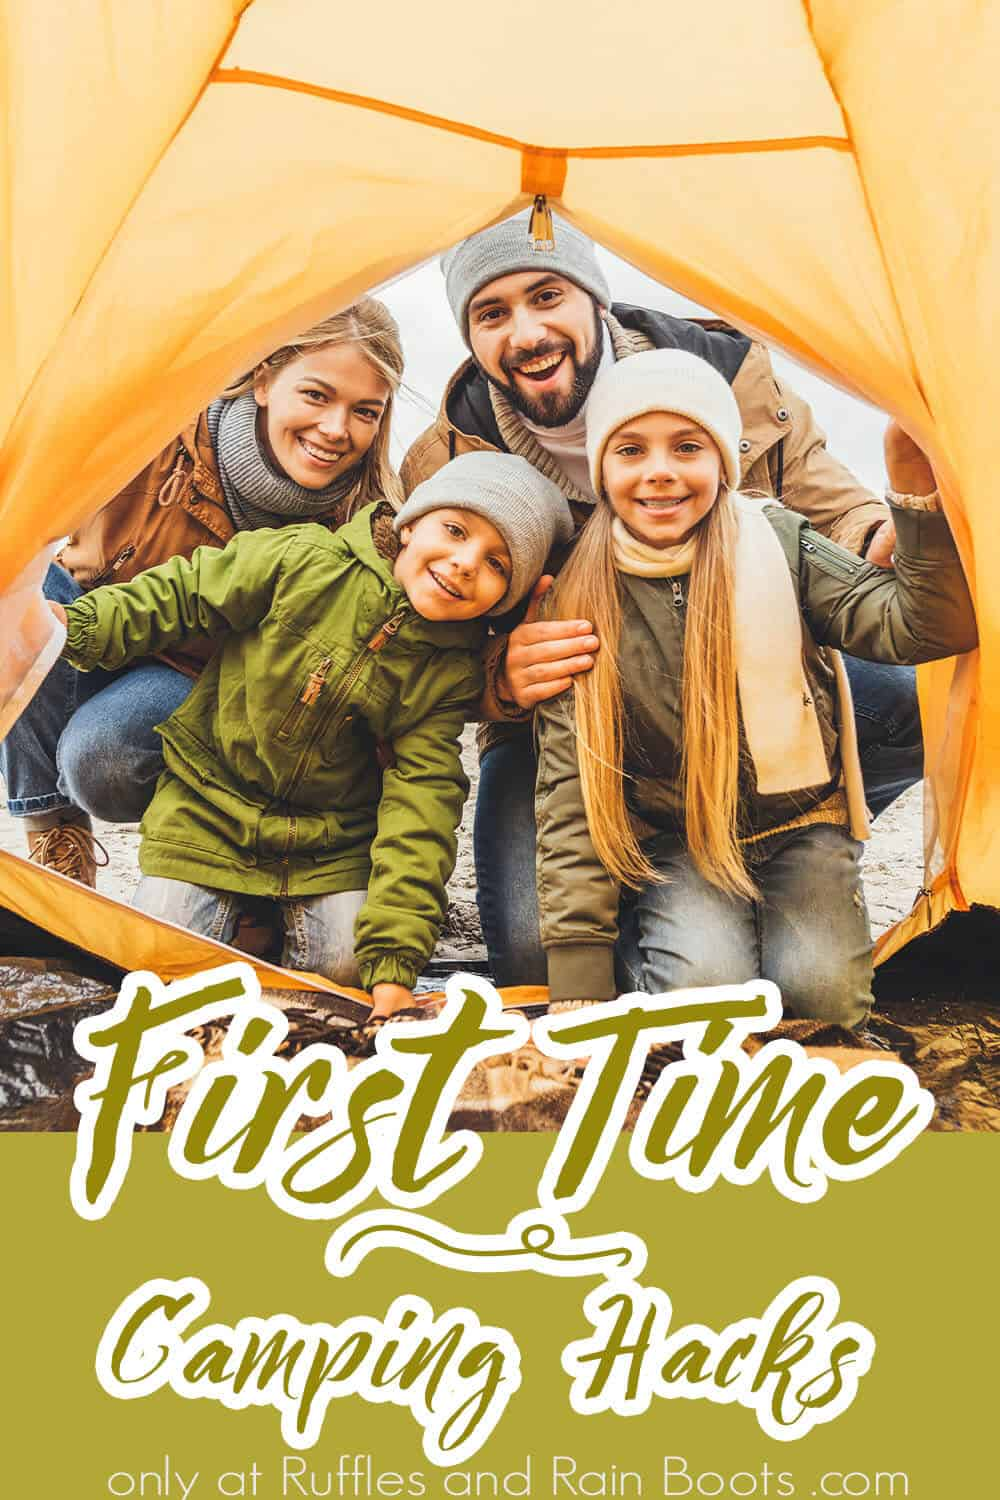 tips for your first time camping with text which reads first time camping hacks